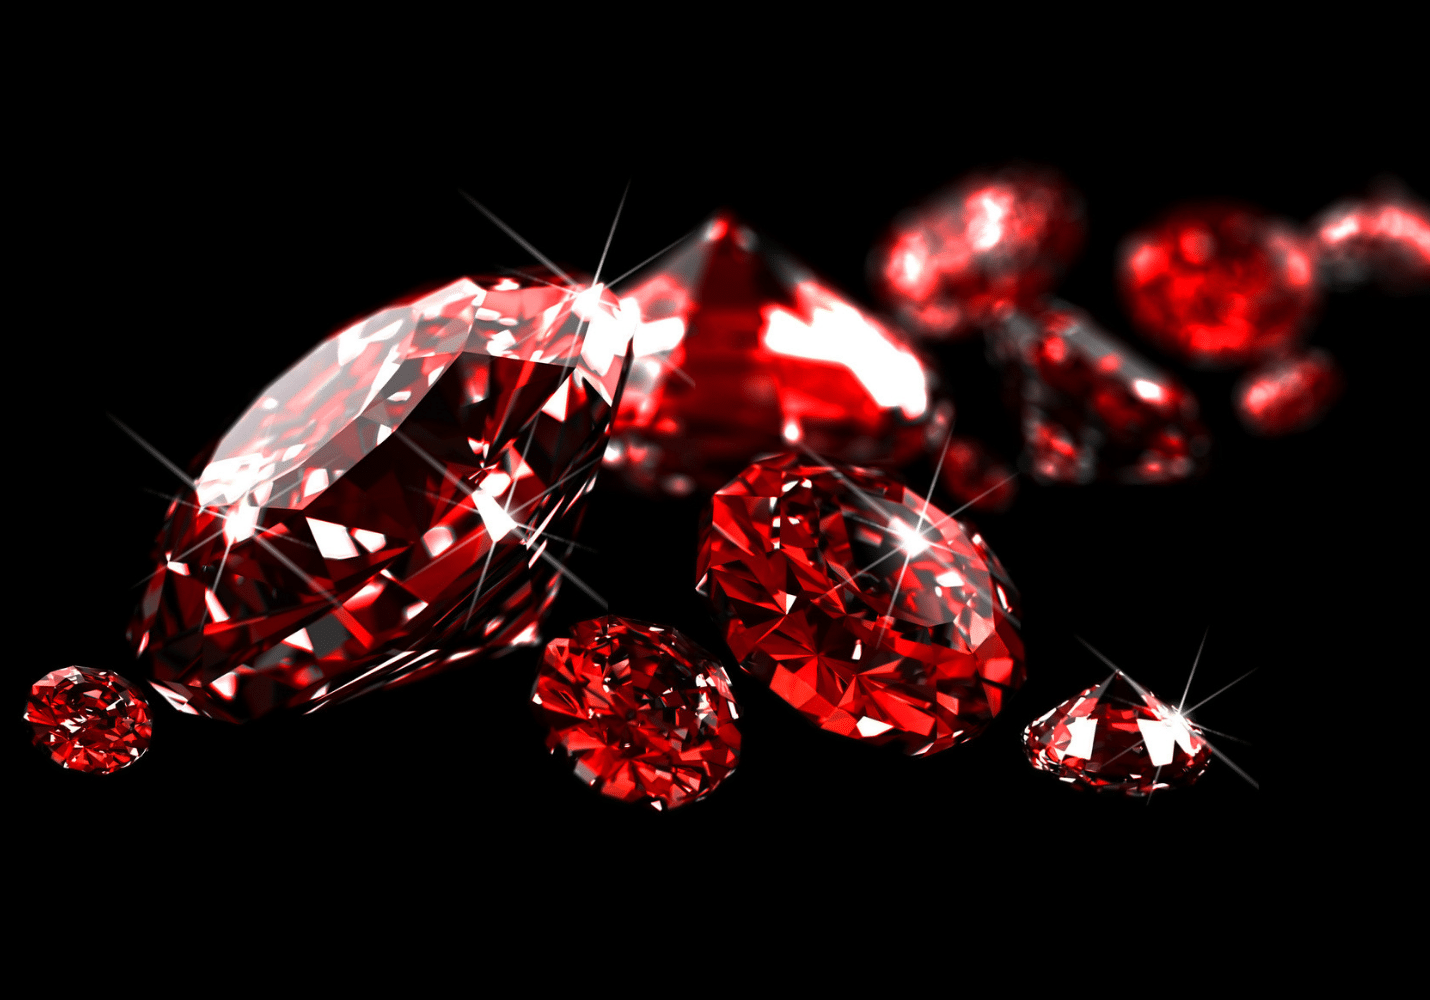 JANUARY BIRTHSTONE - THE RED GARNET